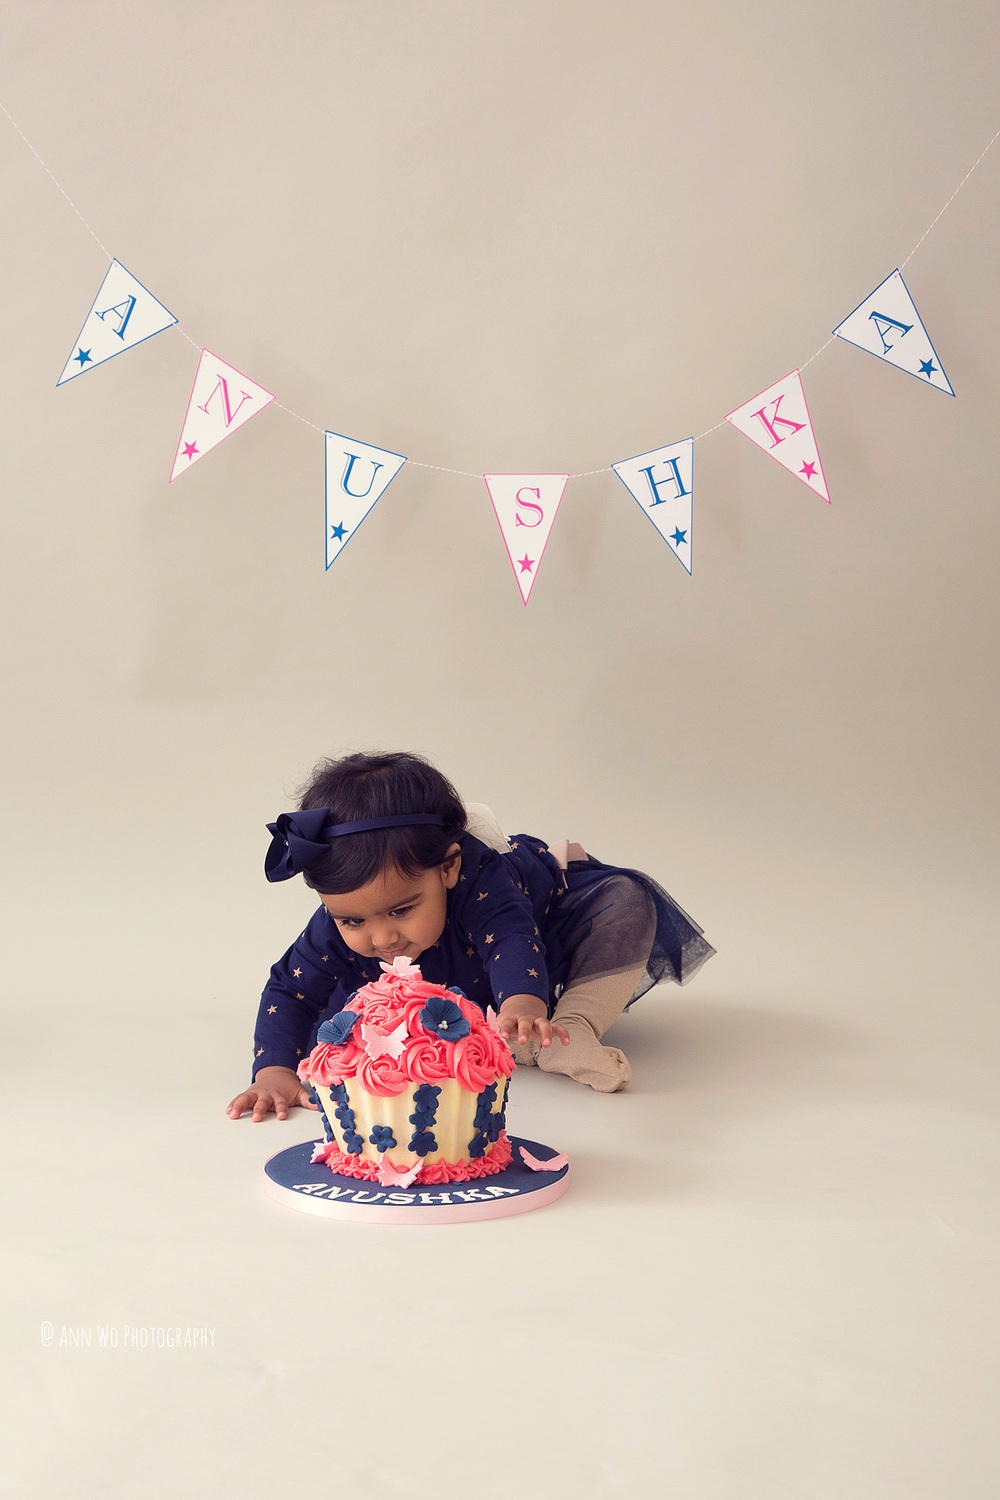 cake-smash-ann-wo-photography-london-028.jpg